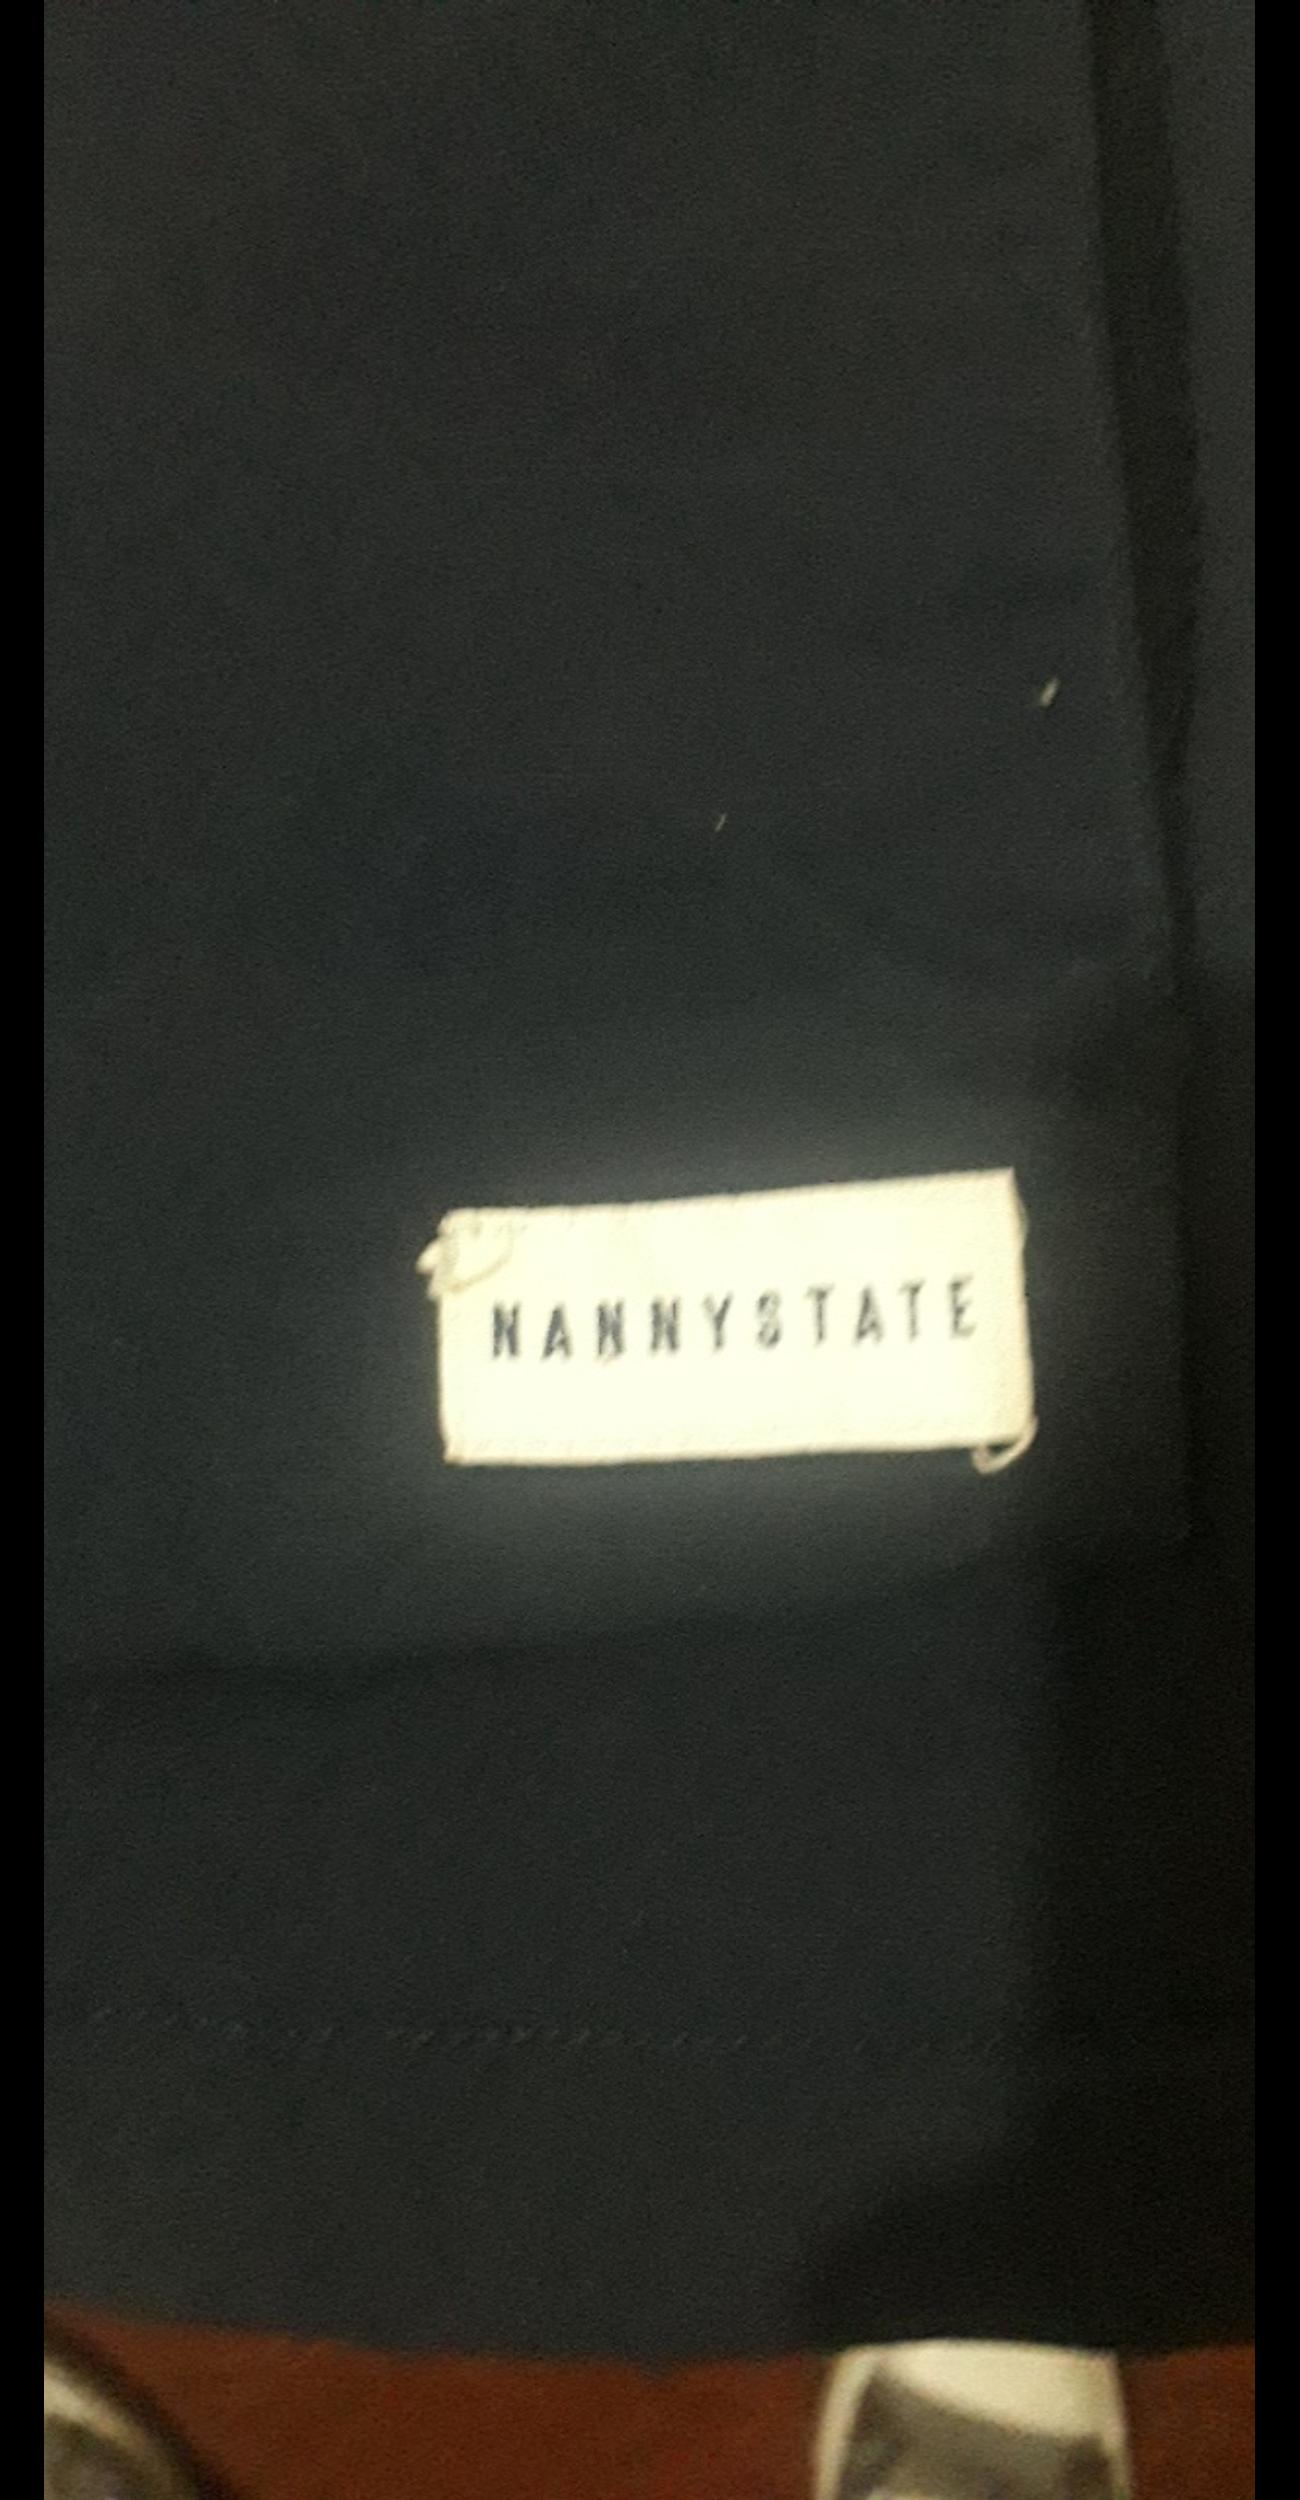 genuine nanny state coat